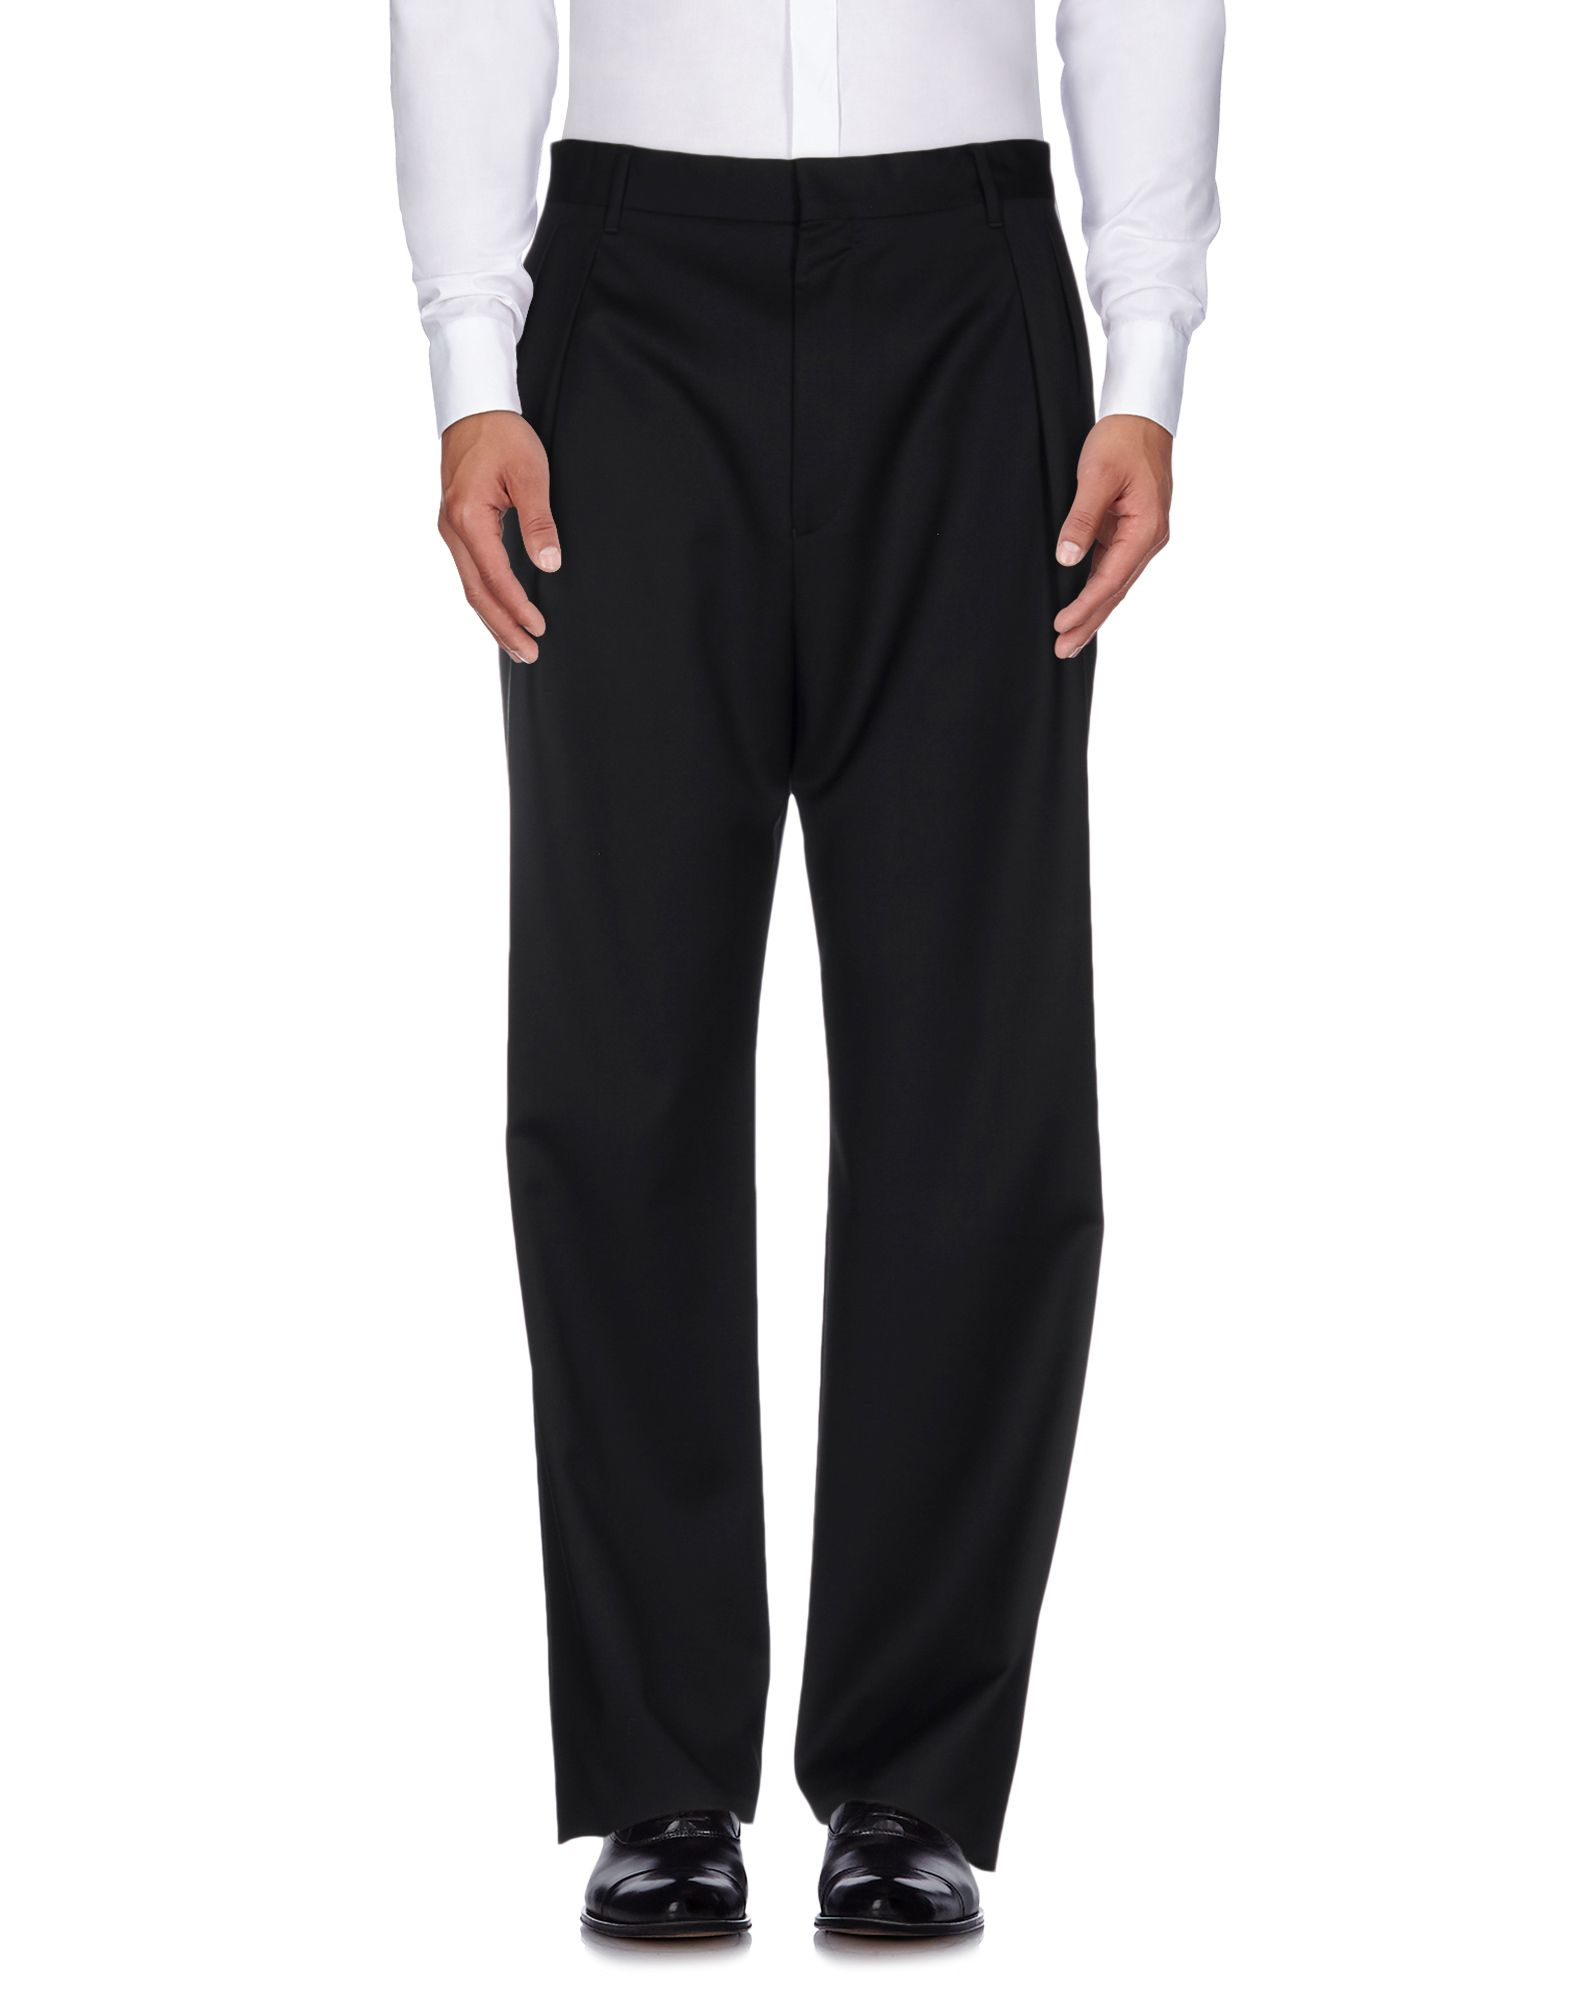 Find Black women's casual pants at ShopStyle. Shop the latest collection of Black women's casual pants from the most popular stores - all in one.